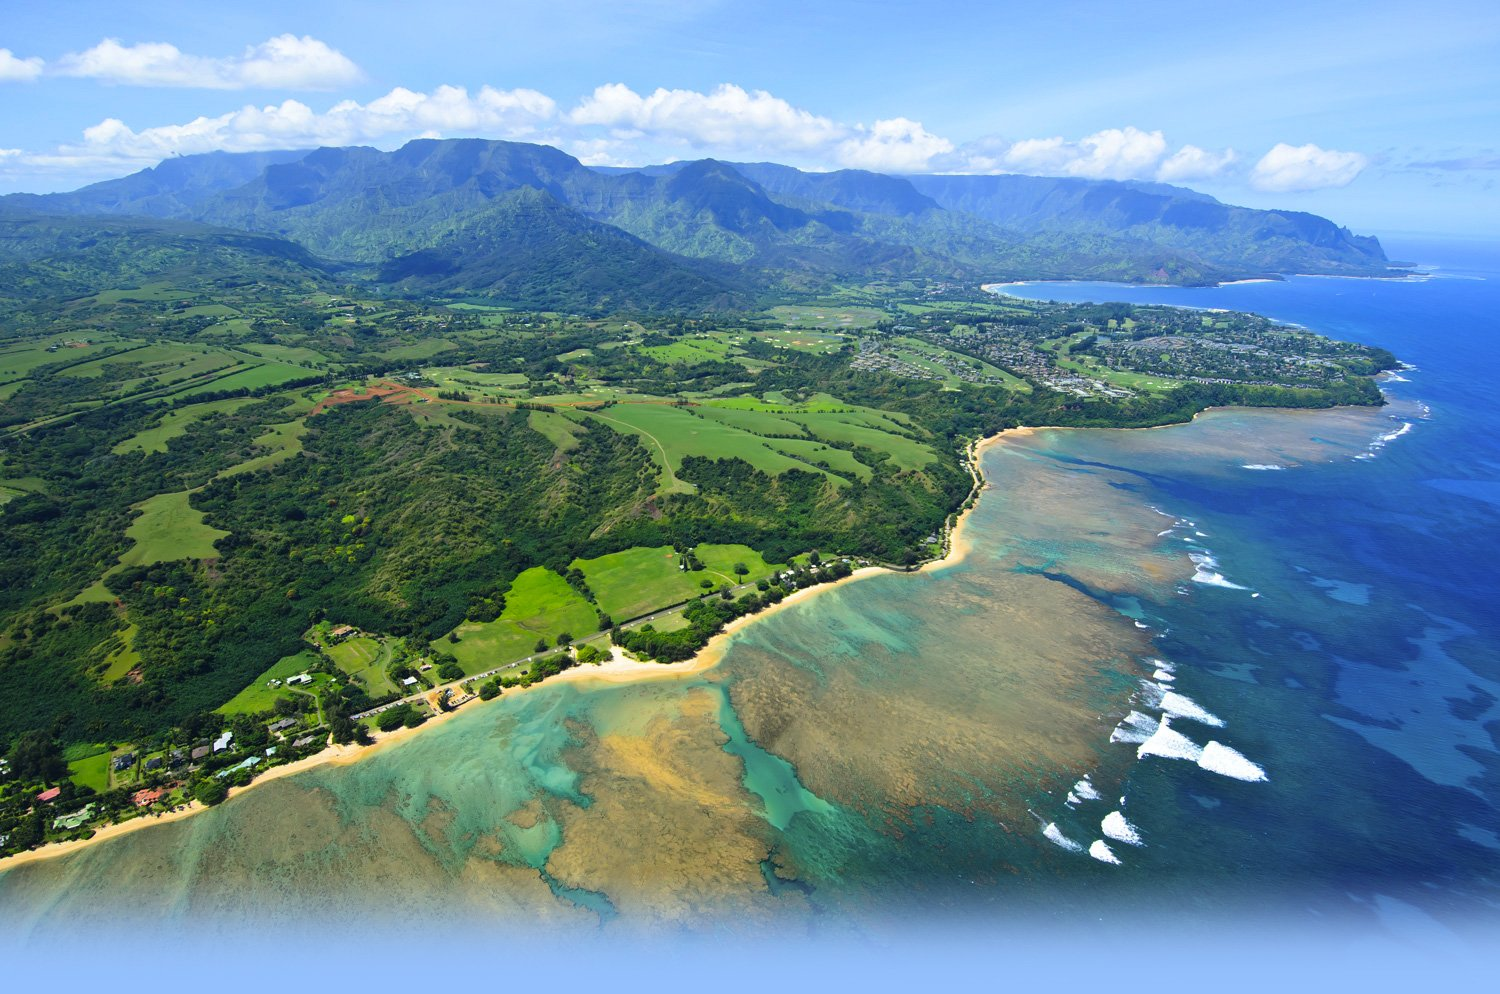 Kauai Zipline Tours, Zip Express 7:30 am Tour